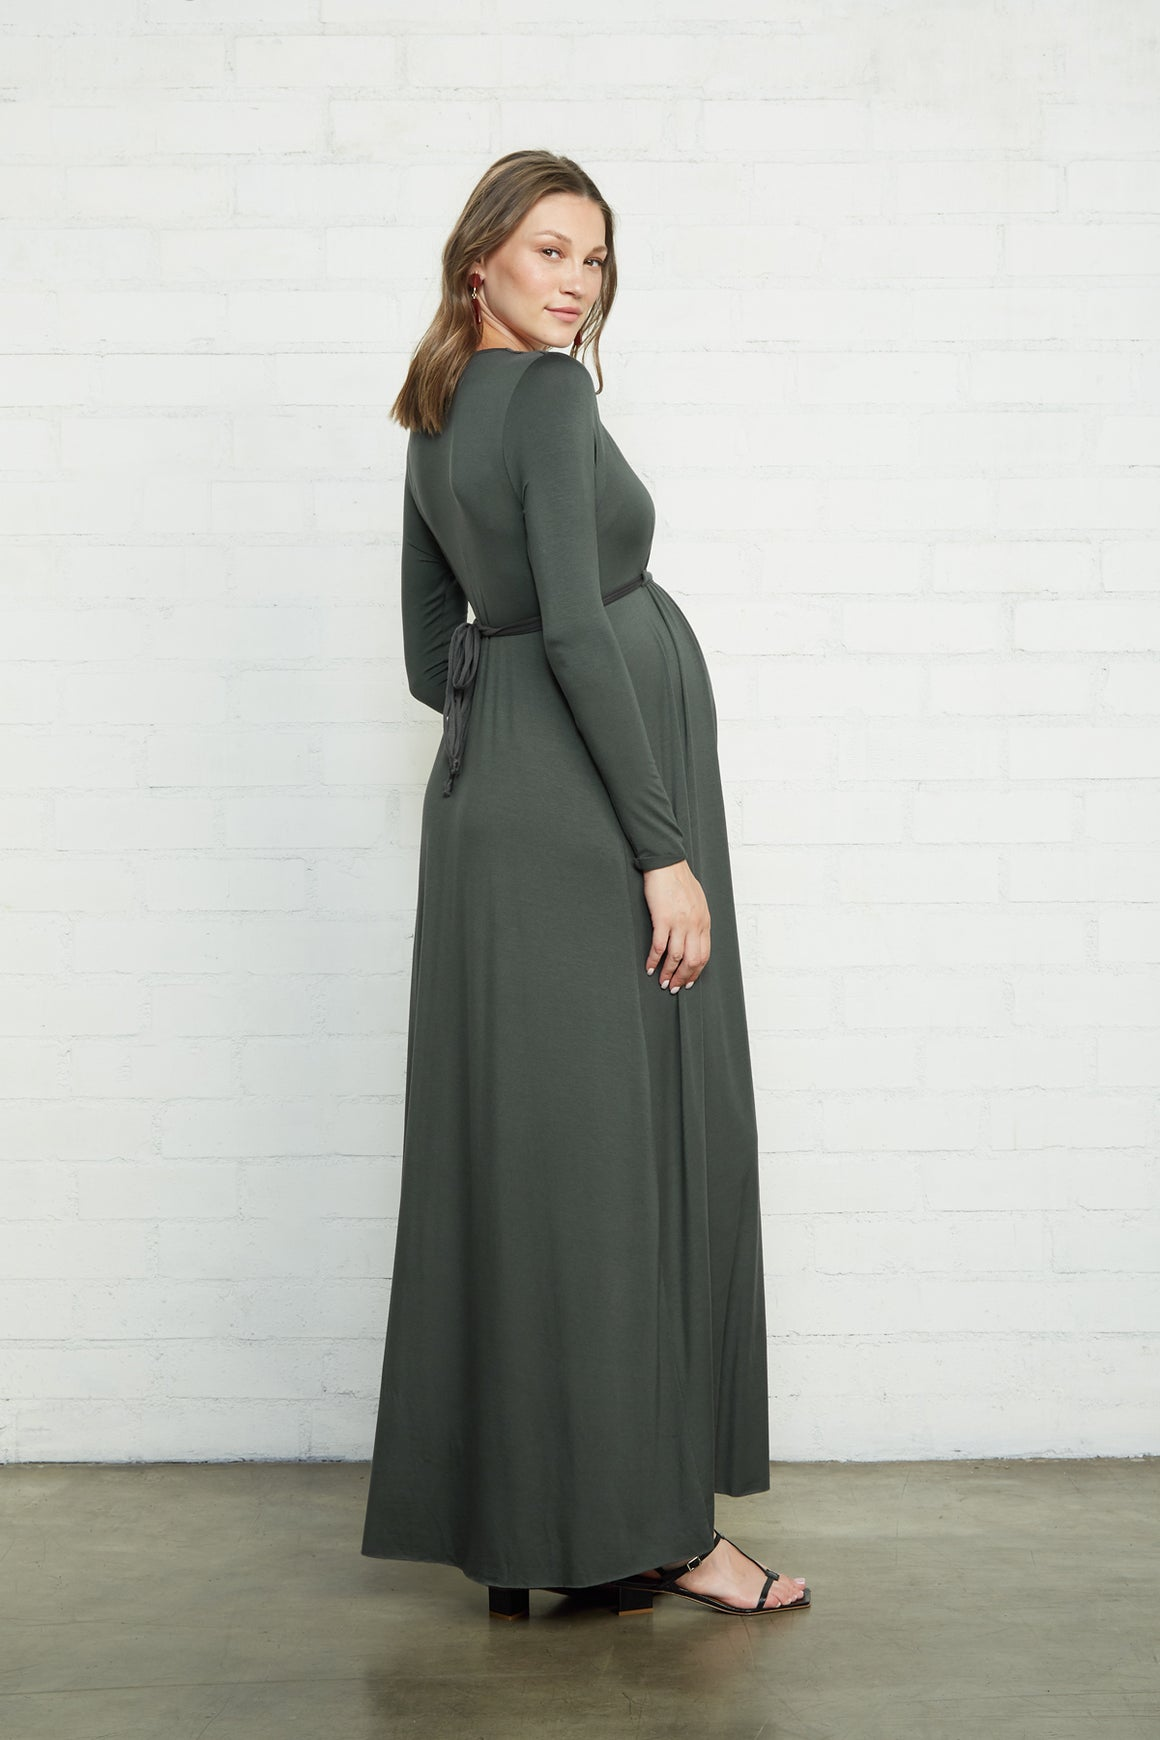 Long Sleeve Full Length Caftan Dress - Maternity